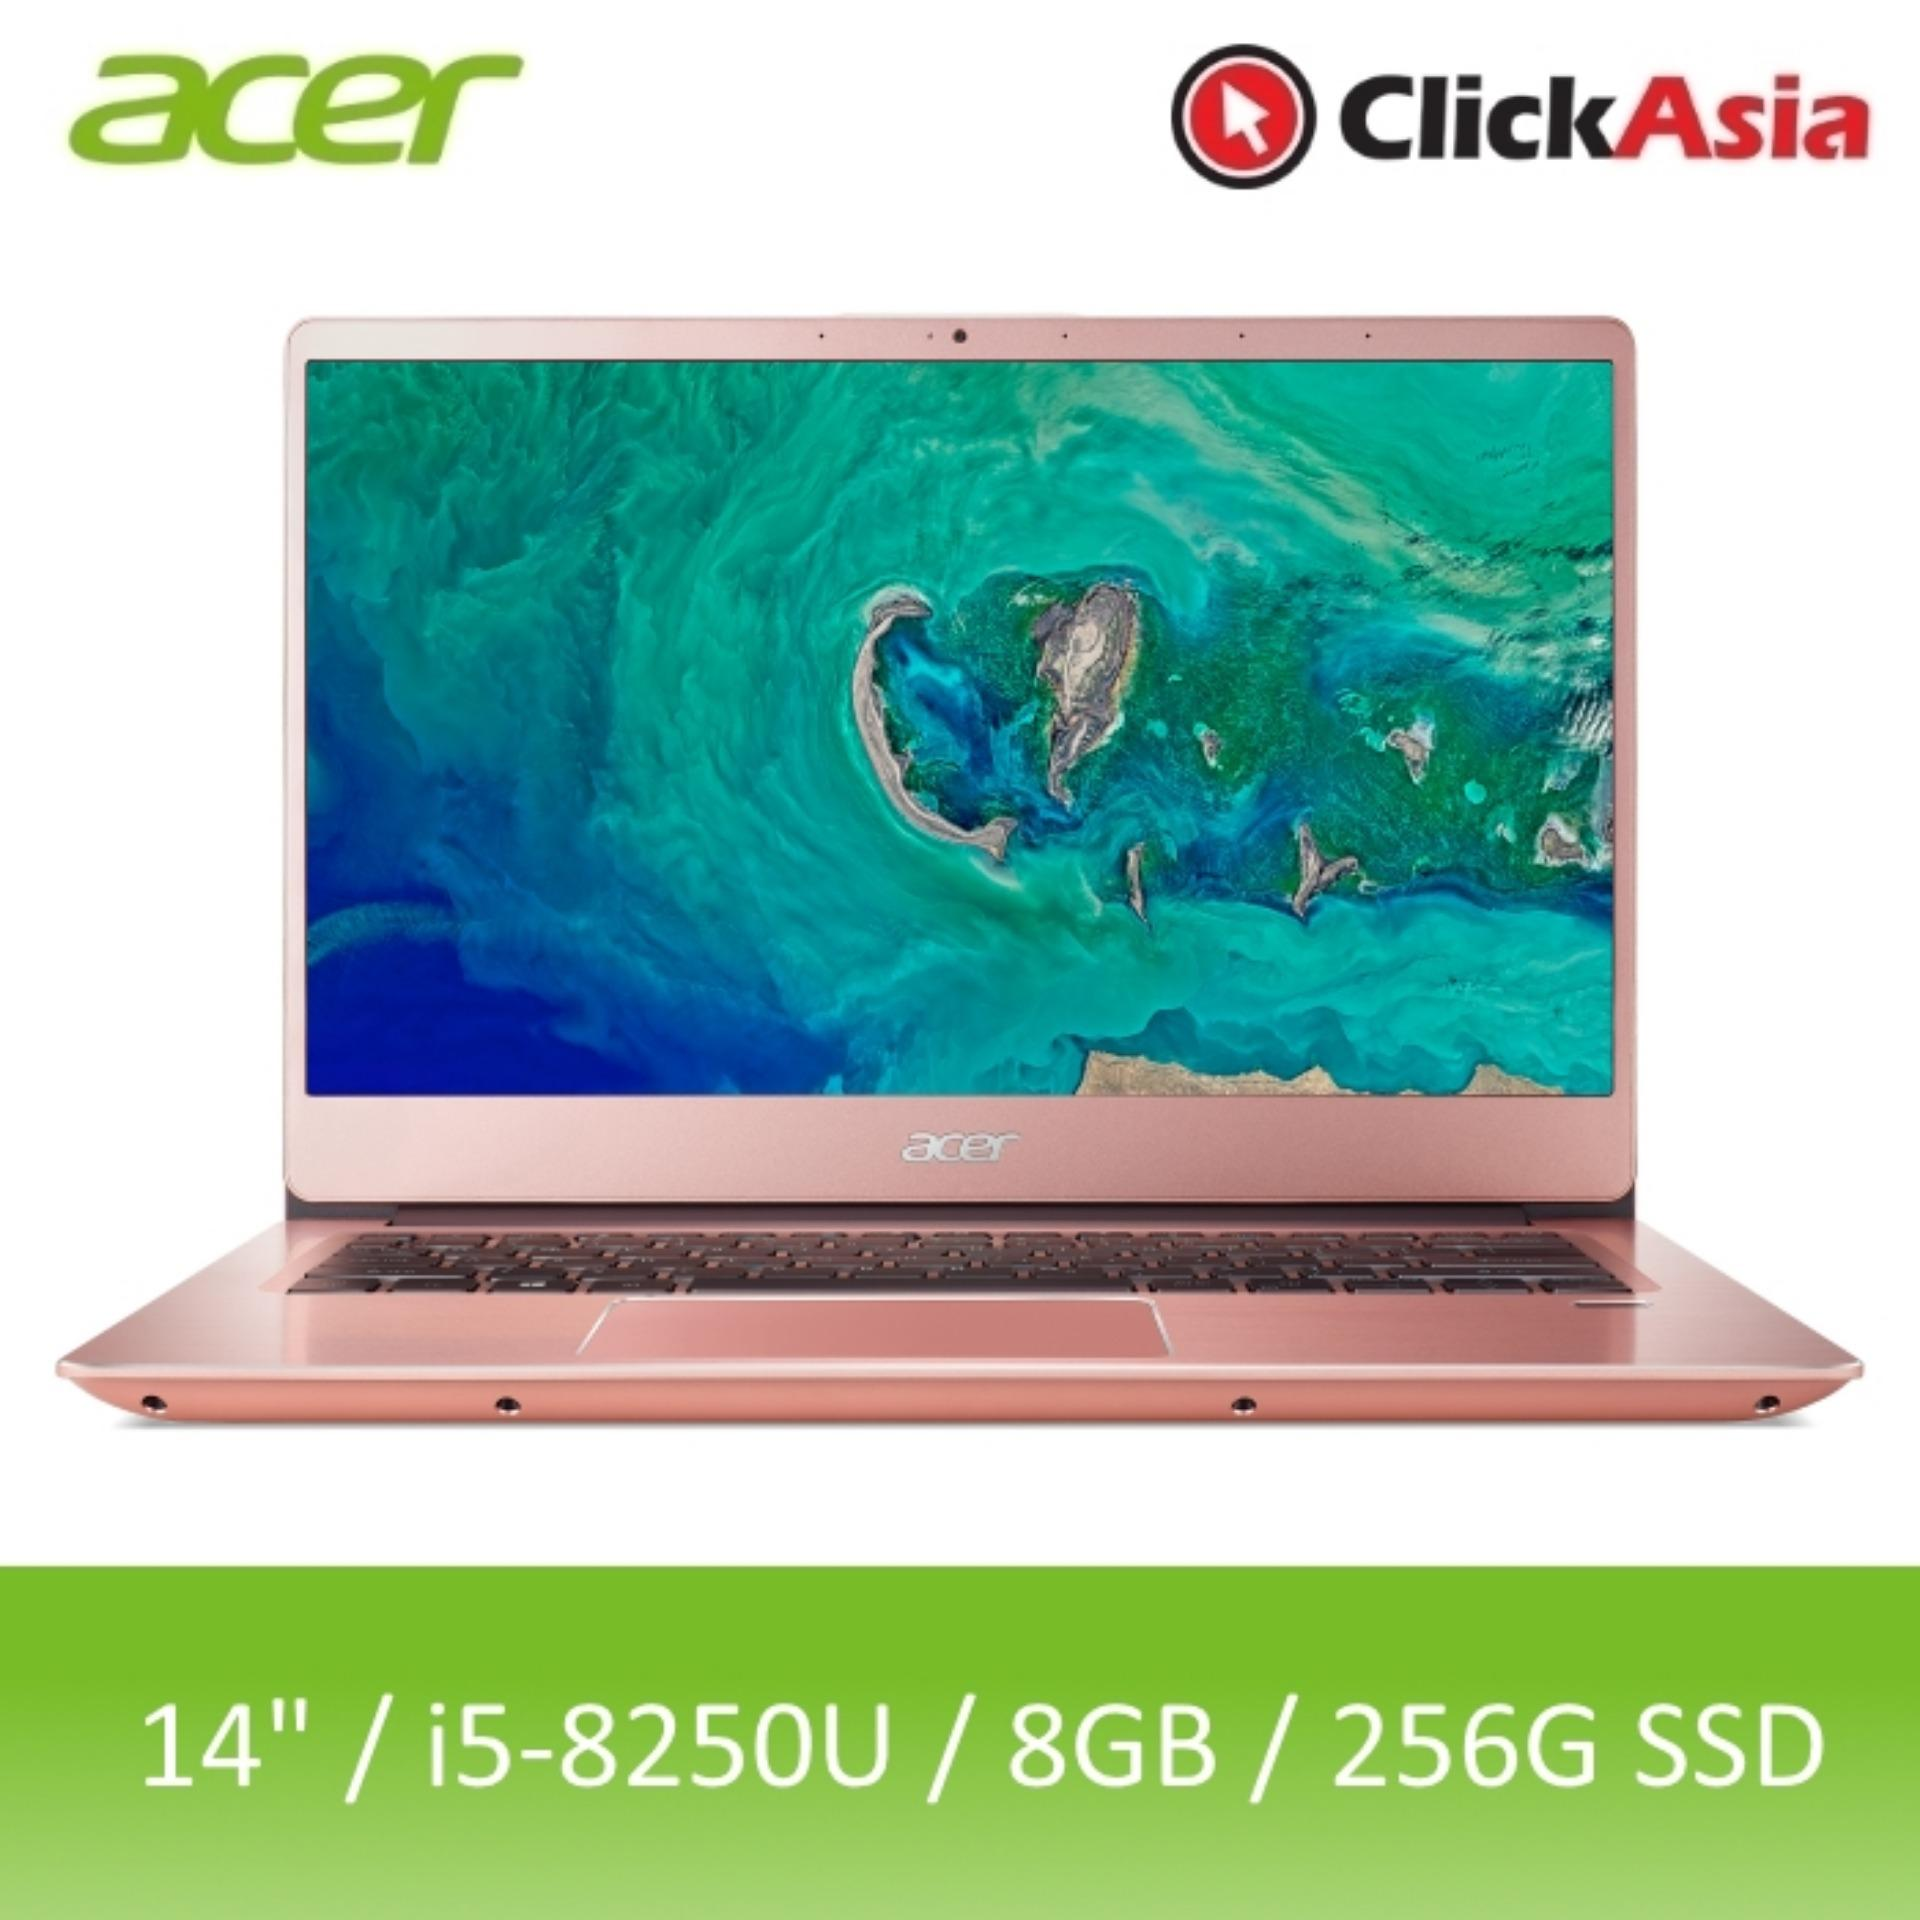 Acer Swift 3 (SF314-54-580S) - 14 FHD/i5-8250U/2*4GB DDR4/256GB SSD/W10 (Pink)